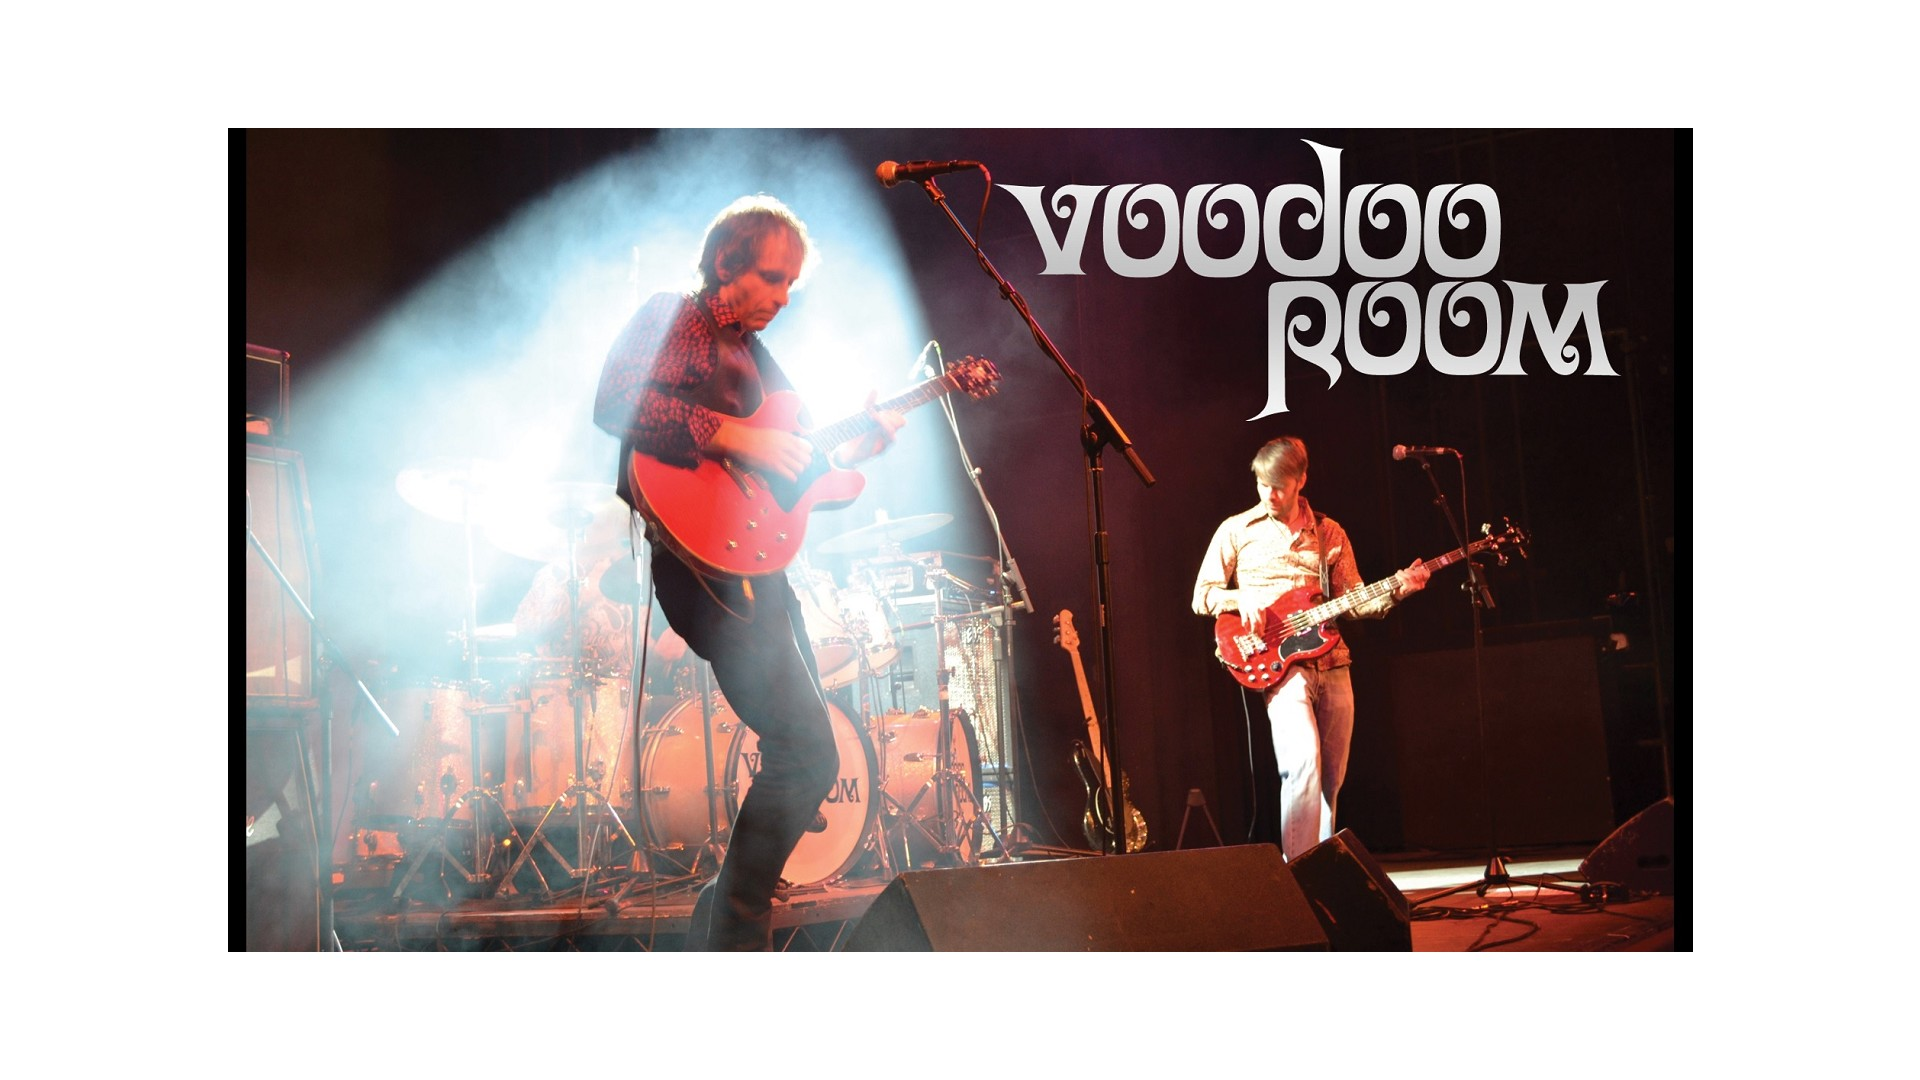 The Voodoo Room - Henrix, Clapton & Cream